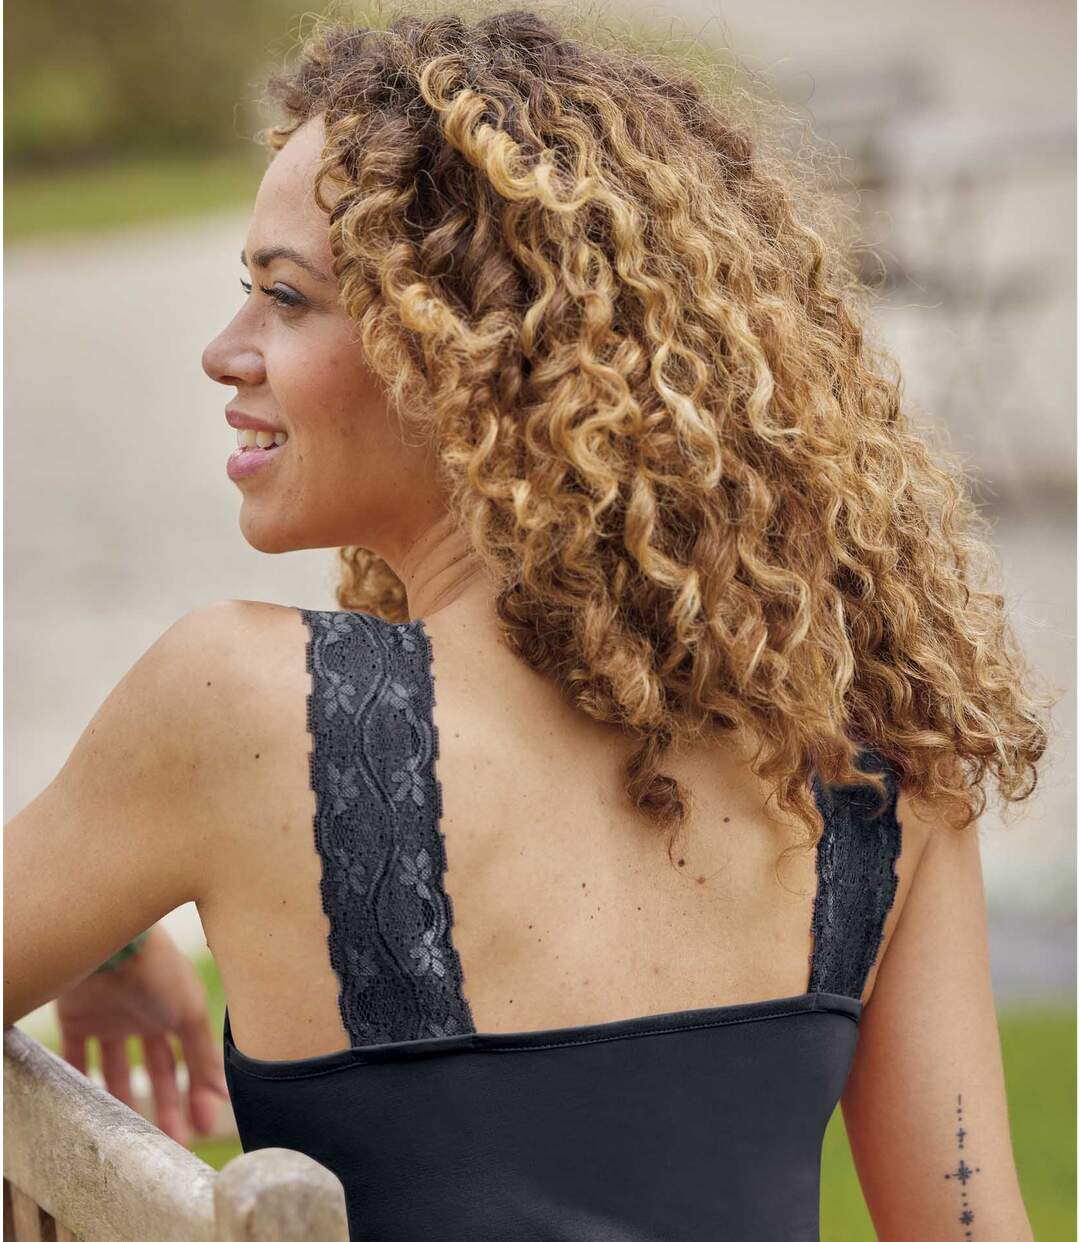 Pack of 2 Women's Lace Tank Tops - Pink and Black  Atlas For Men